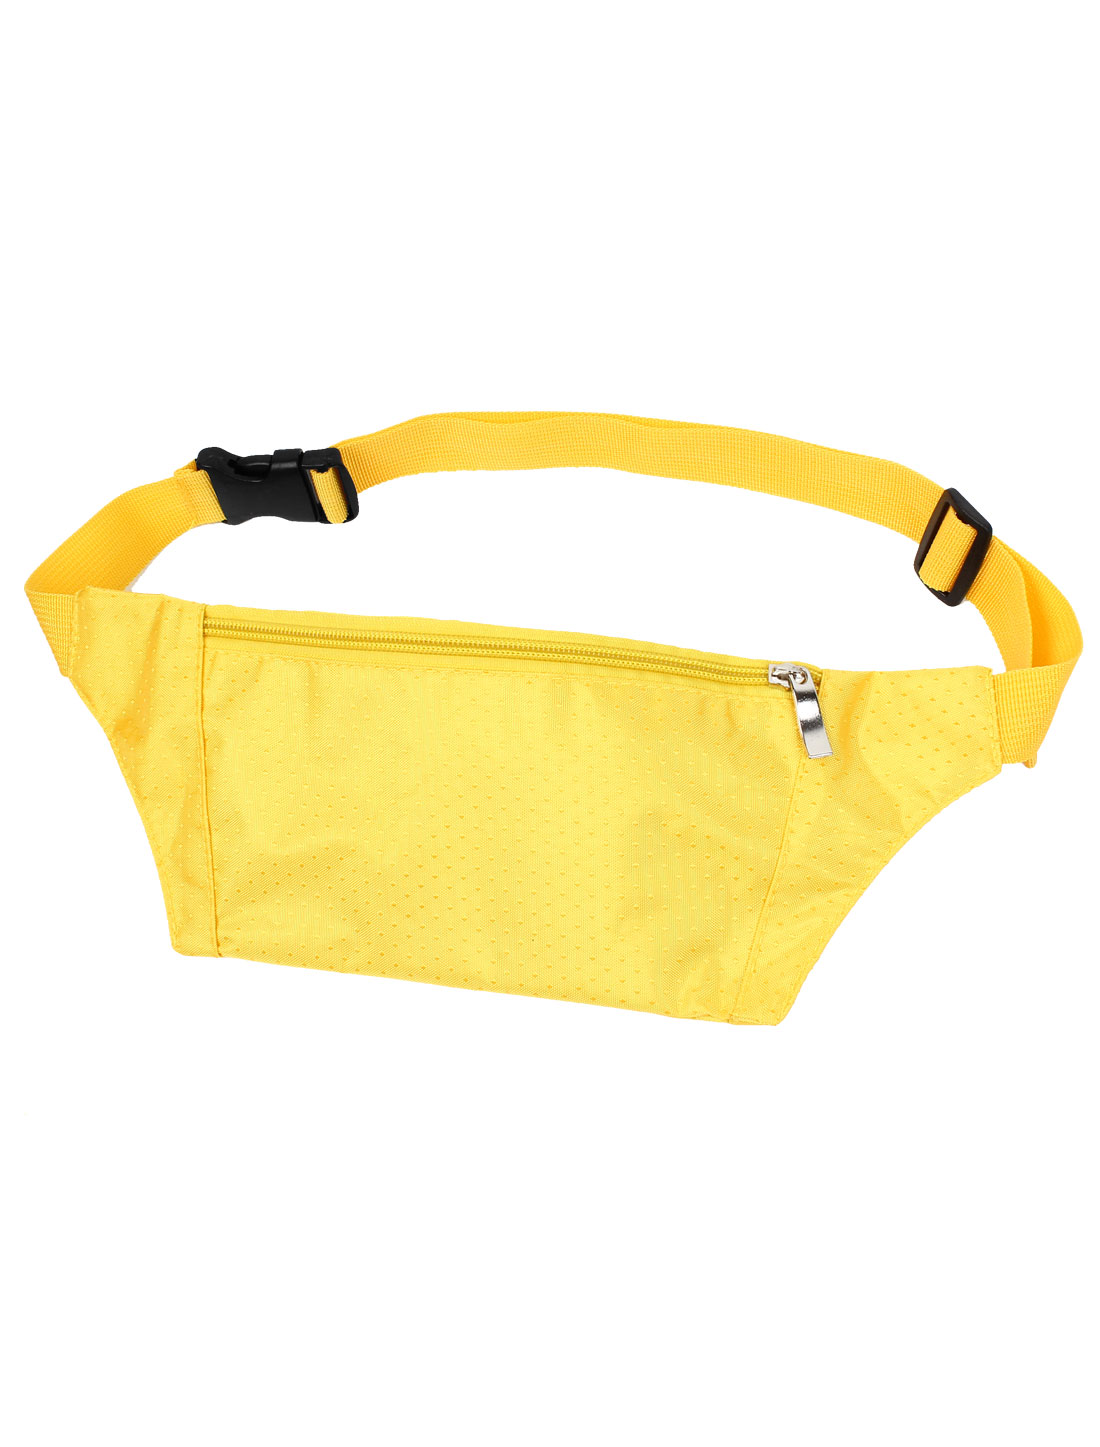 Unisex Side Release Buckle Zip up 3 Compartments Waist Bag Pouch Pack Yellow